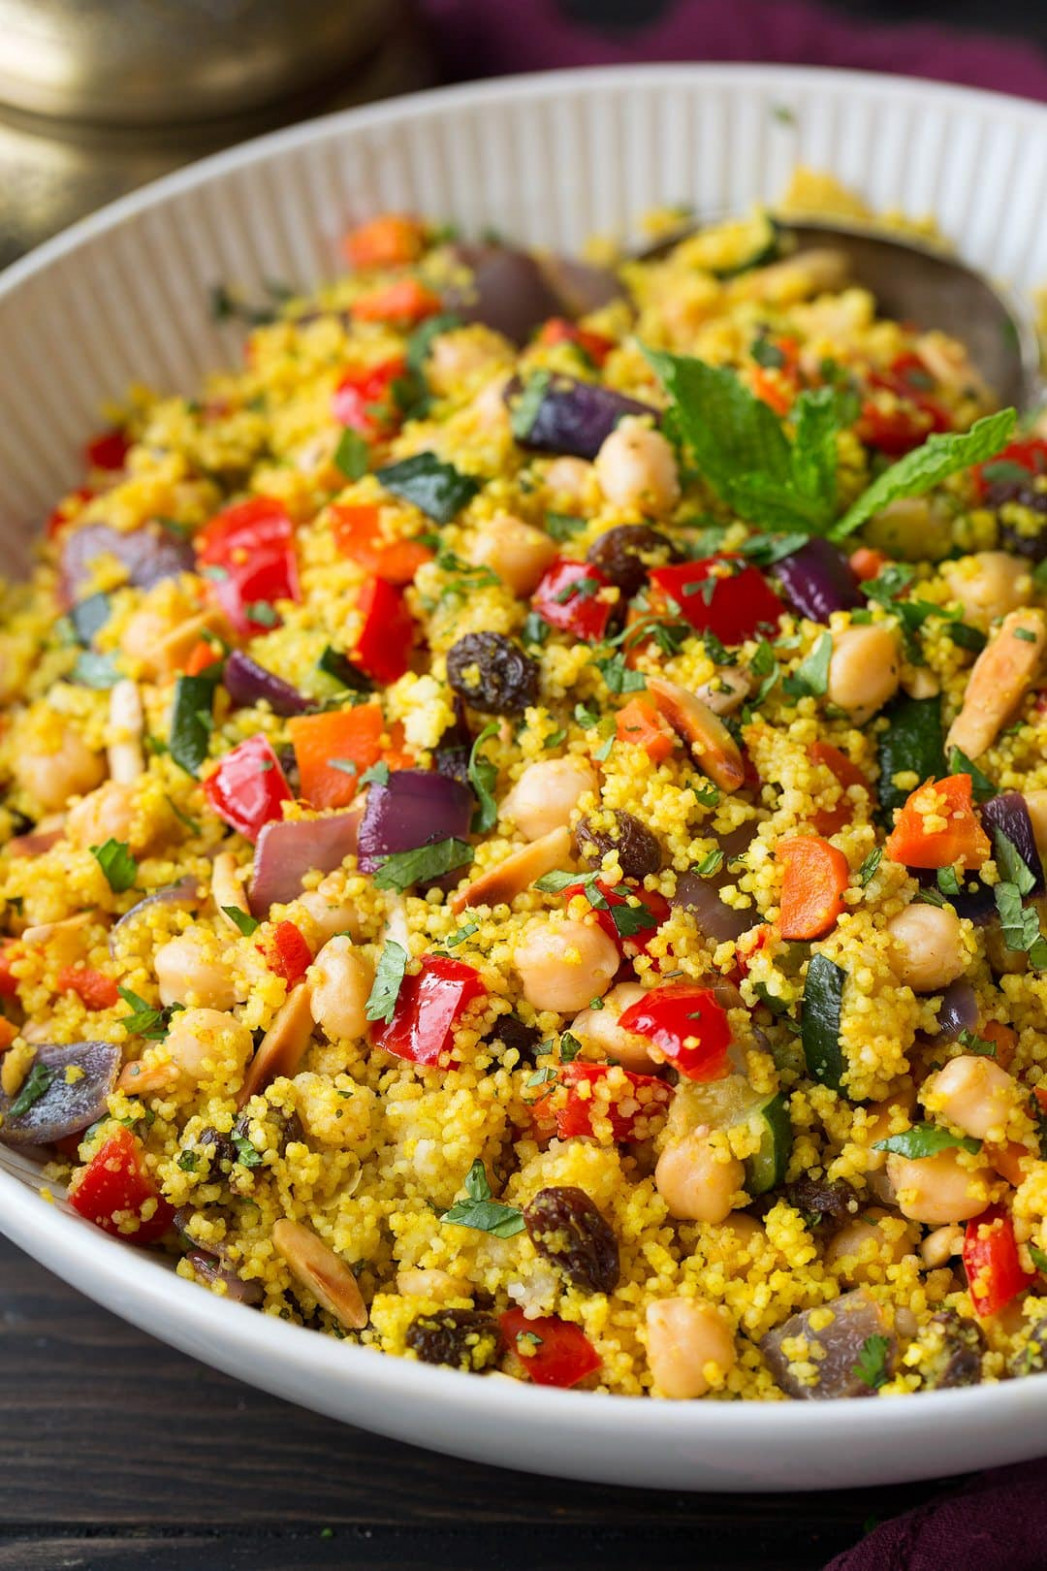 Moroccan Couscous With Roasted Vegetables, Chick Peas And Almonds - Couscous Recipes Vegetarian